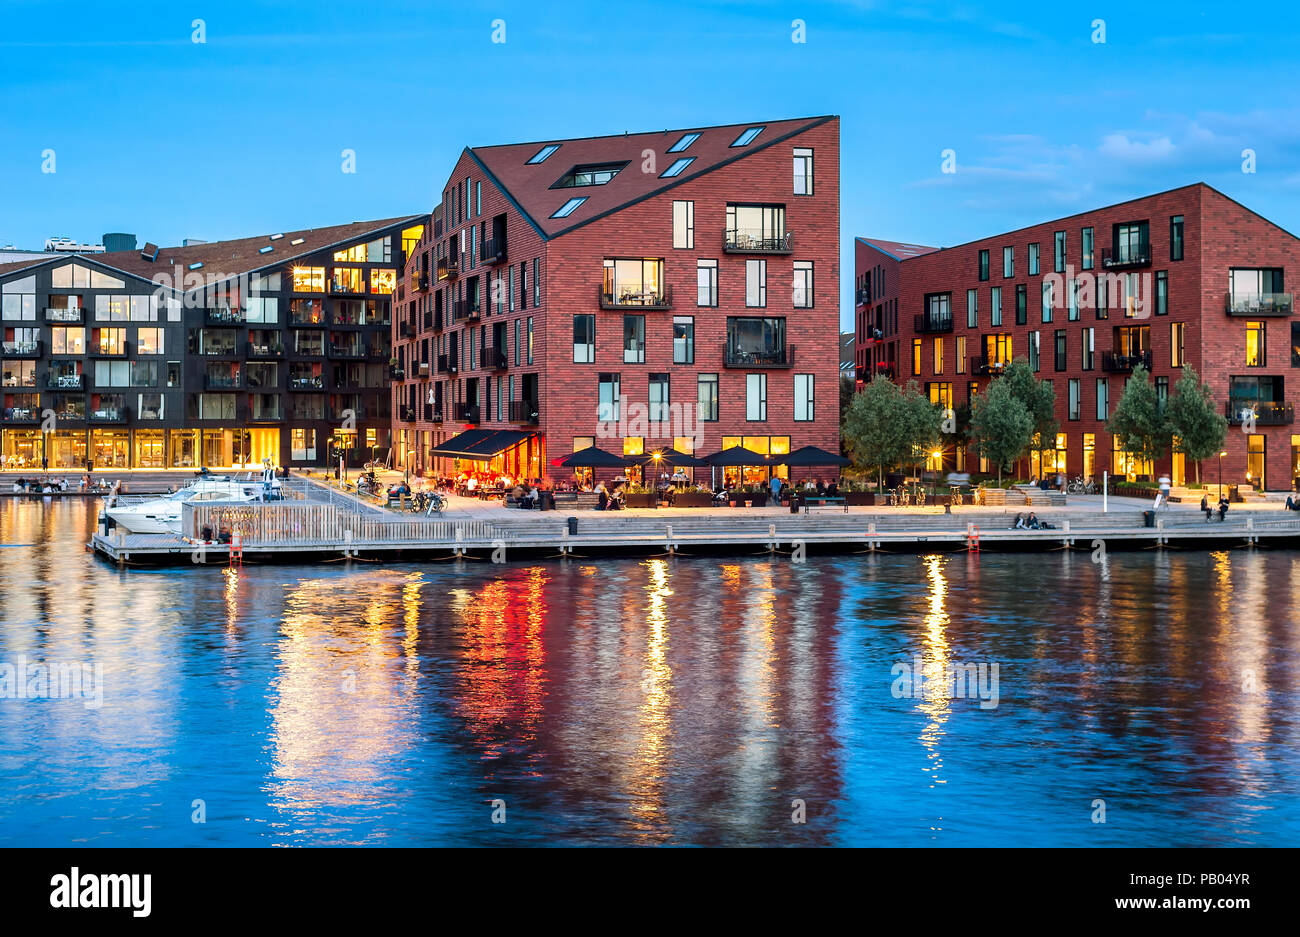 Kroyers Plads buildings of modern architecture design by embankment illuminated at night, Copenhagen, Denmark - Stock Image